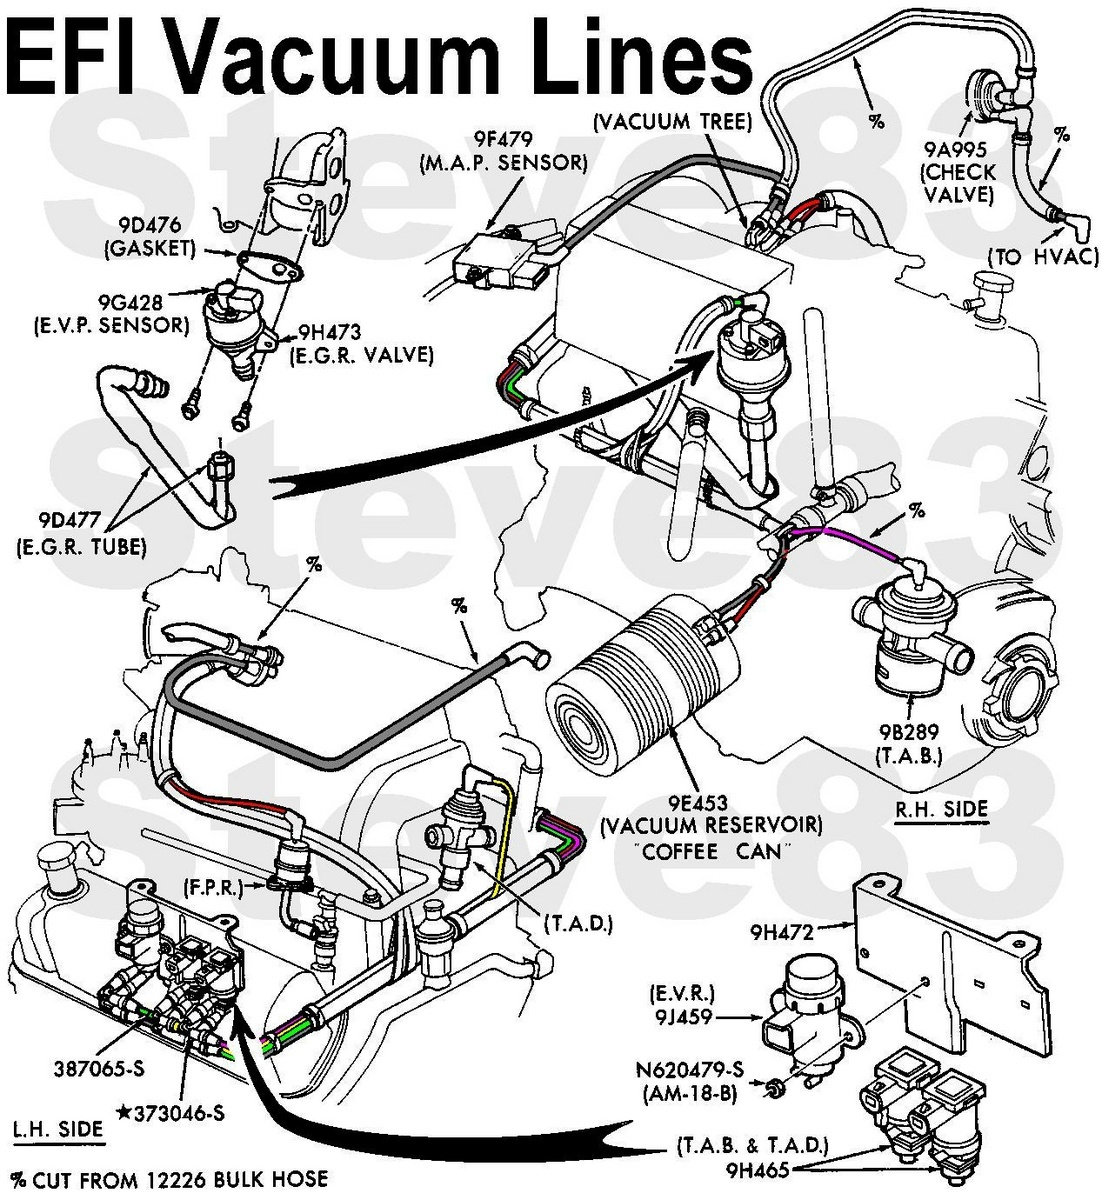 [SCHEMATICS_48ZD]  Ford F-150 Questions - Is there a diagram for vacuum hoses on 1990 F150 EFI  5.0 litre? - CarGurus | 1997 Ford Explorer 302 Engine Diagram |  | CarGurus